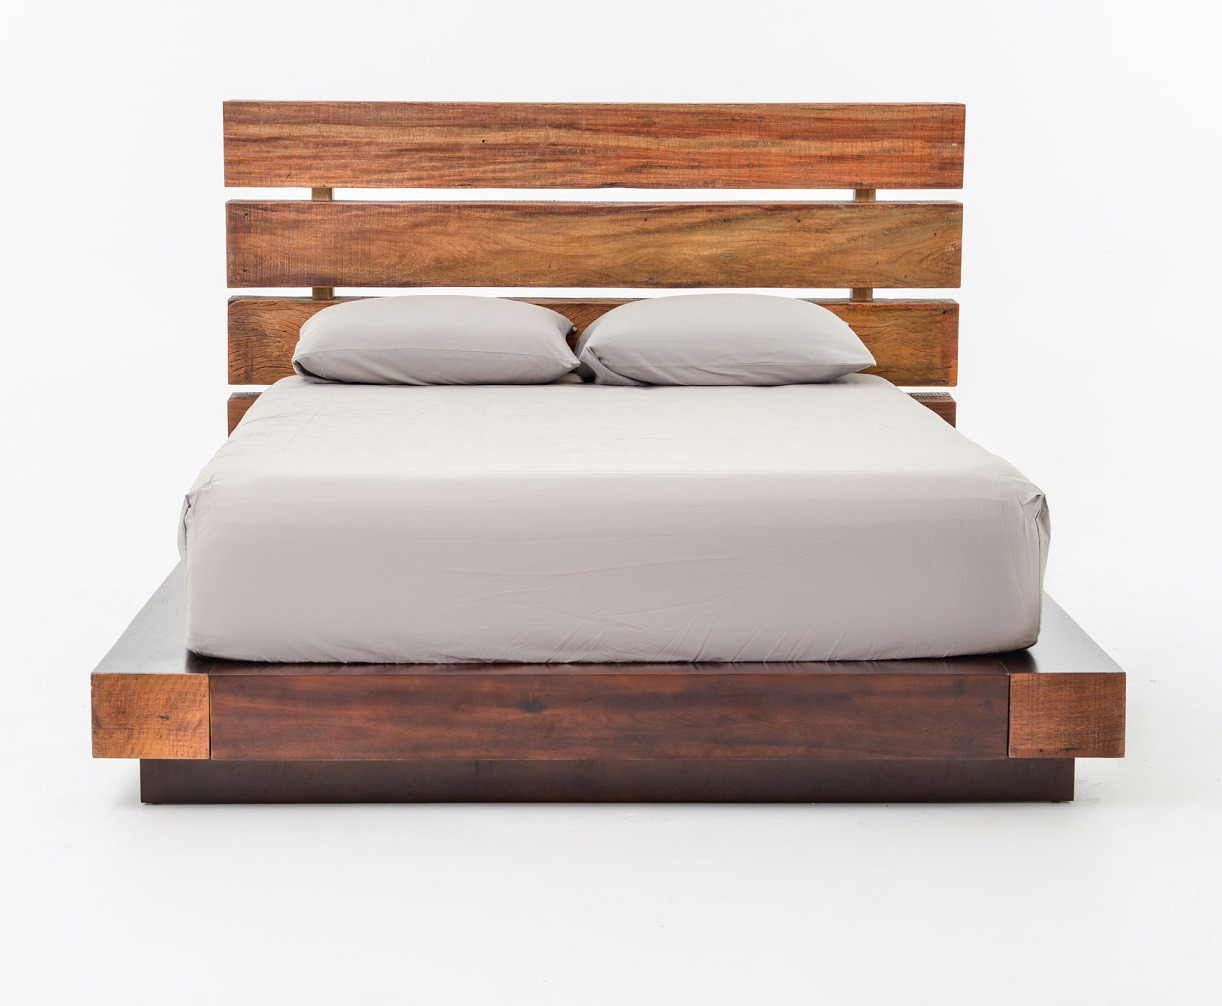 bina iggy king platform bed  reclaimed wood platform bed frame  - image